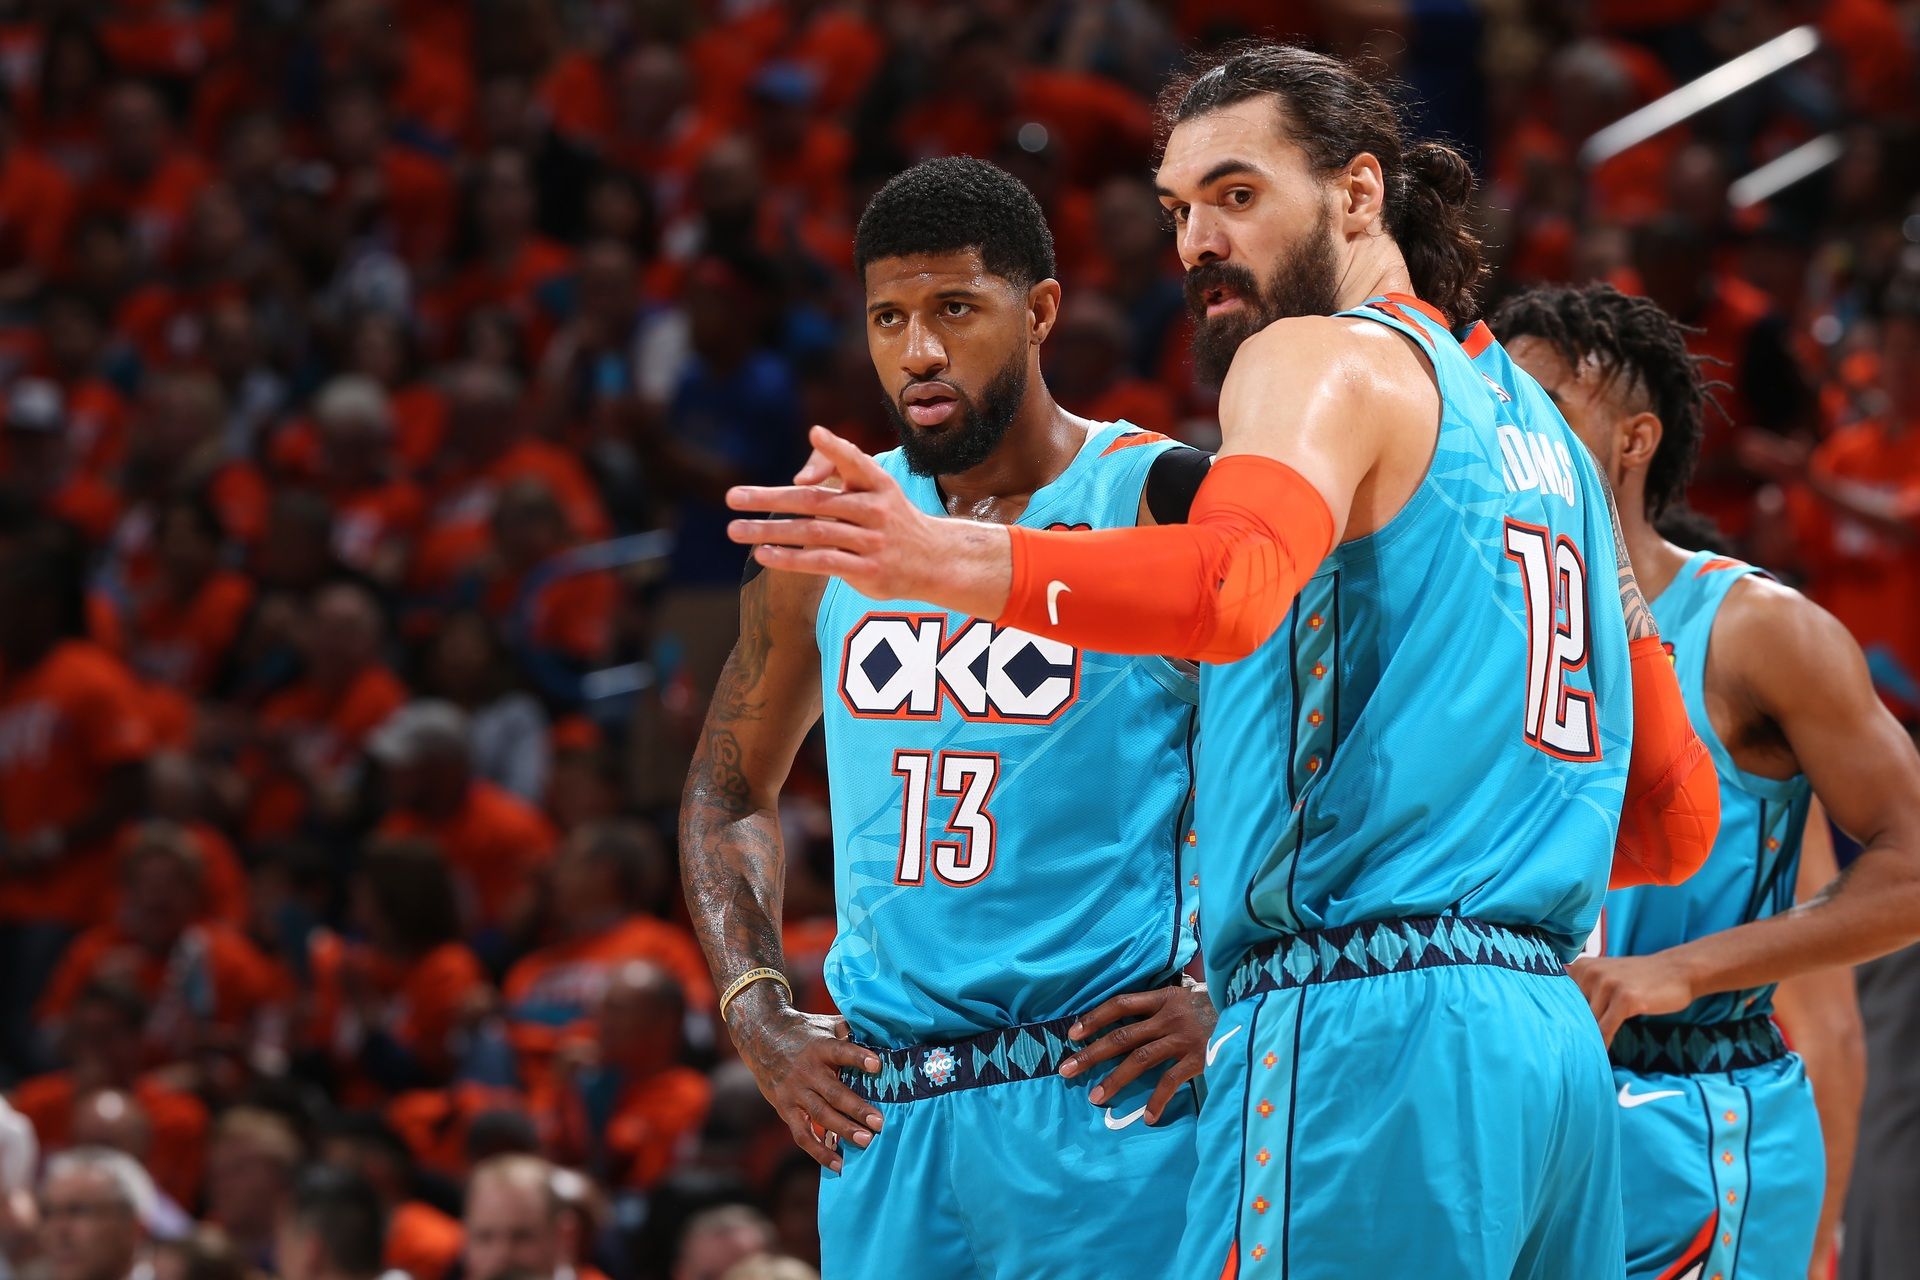 Christopher Reive: Steven Adams is doing what he's paid for, and becoming the Oklahoma City Thunder's scapegoat in the process